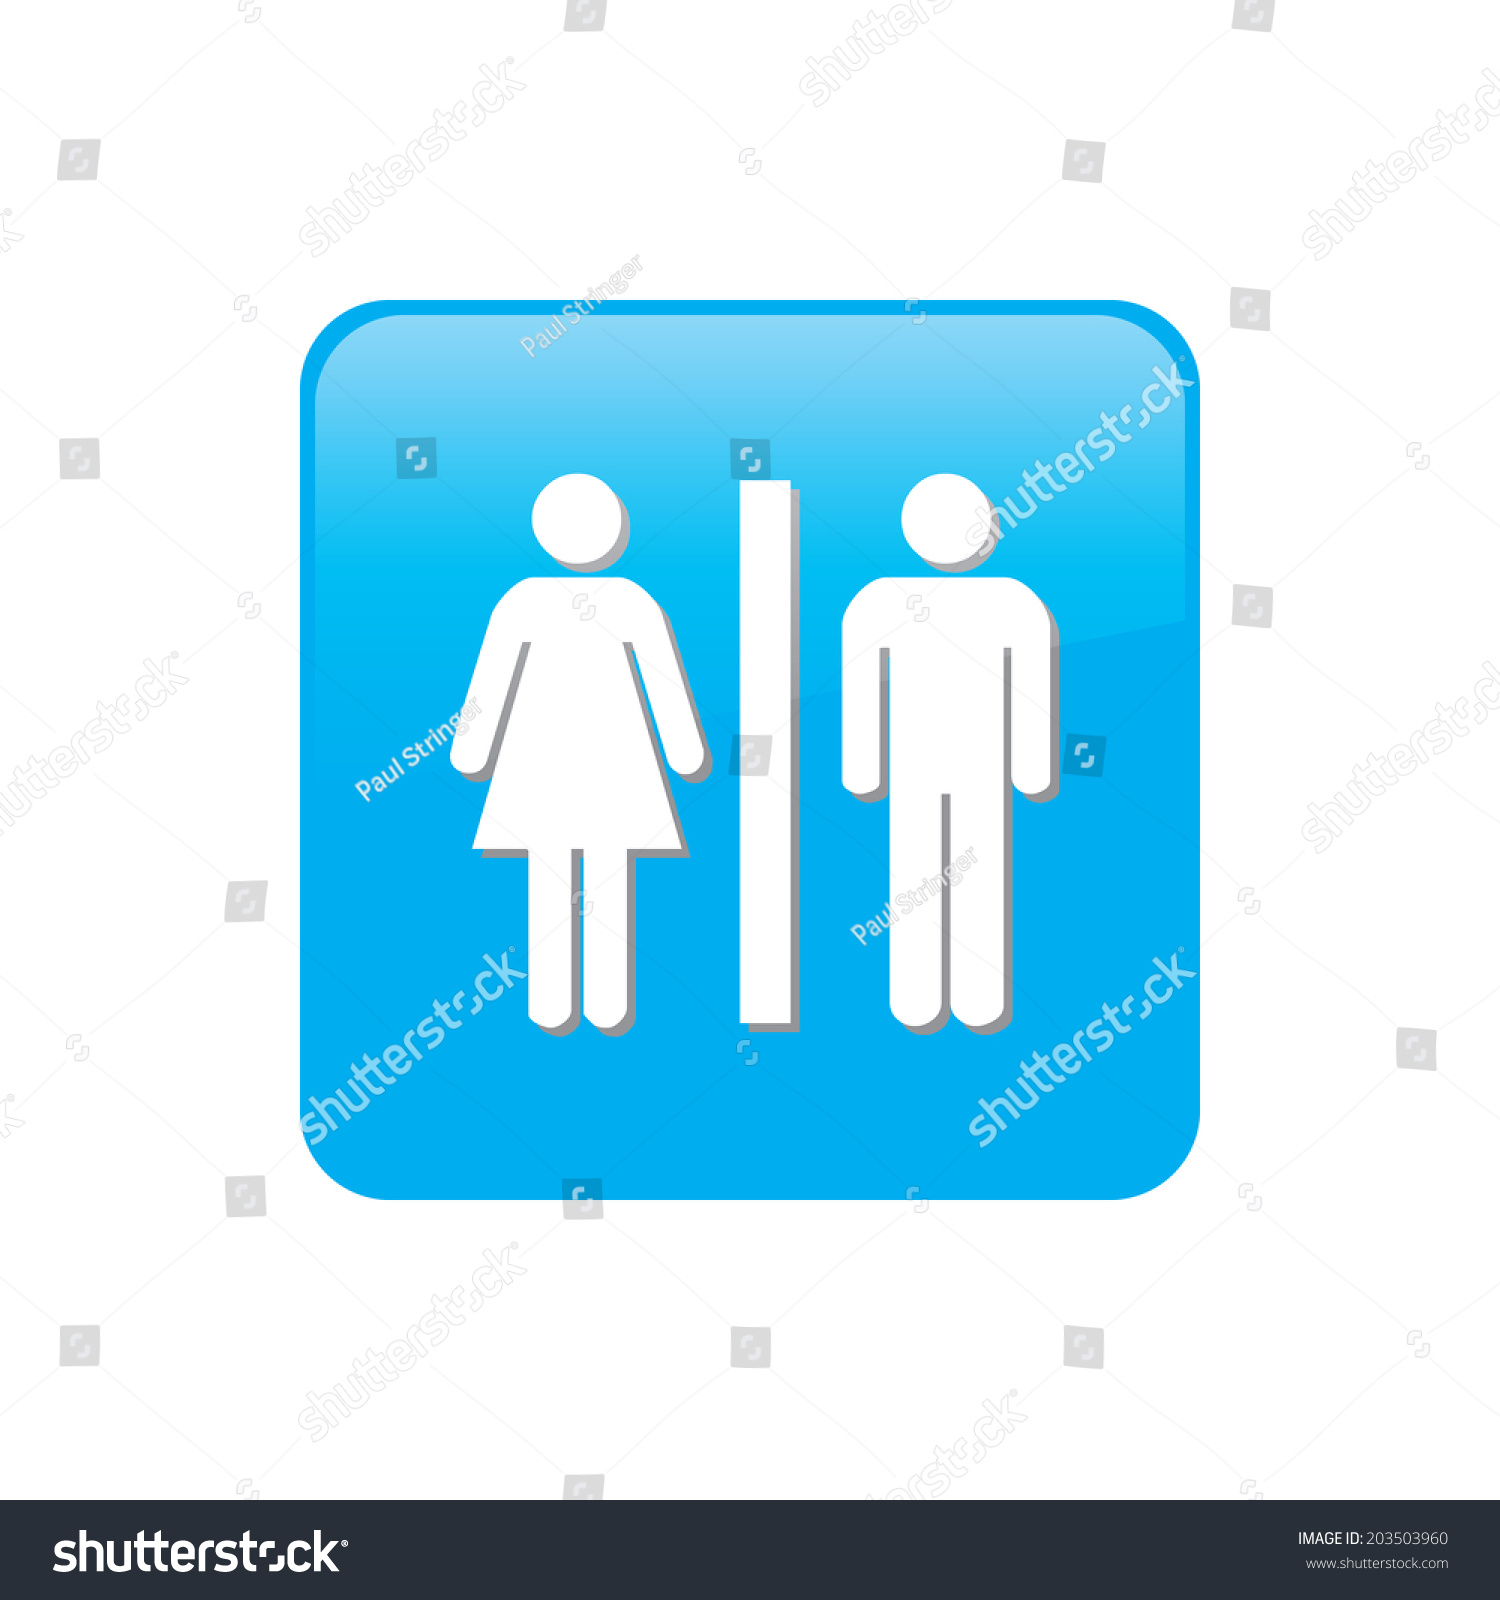 Colorful Square Buttons Website App Toilet Stock Illustration ...